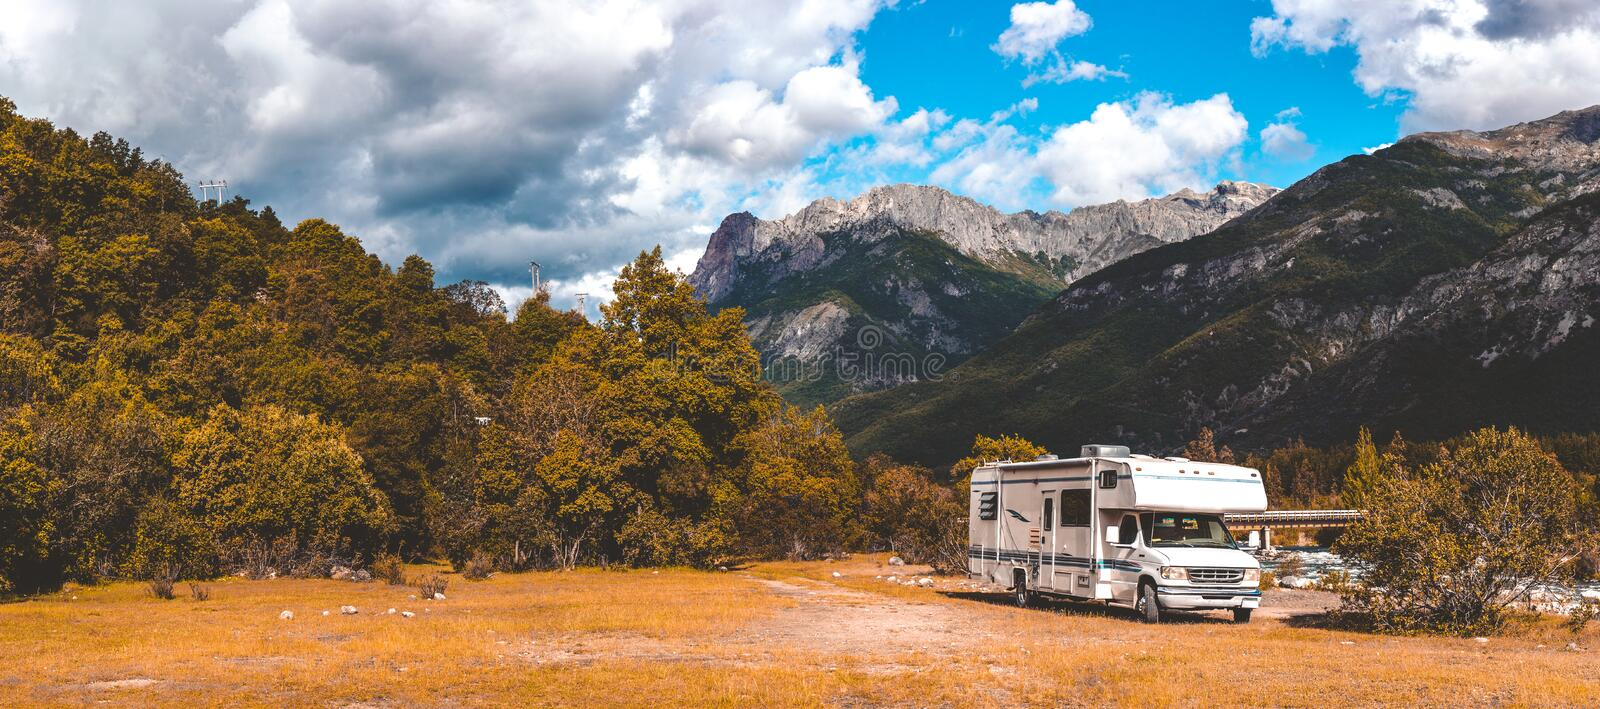 Panoramic view of MOTORHOME RV In Chilean landscape in Andes. Family trip traval vacation in mauntains stock photography